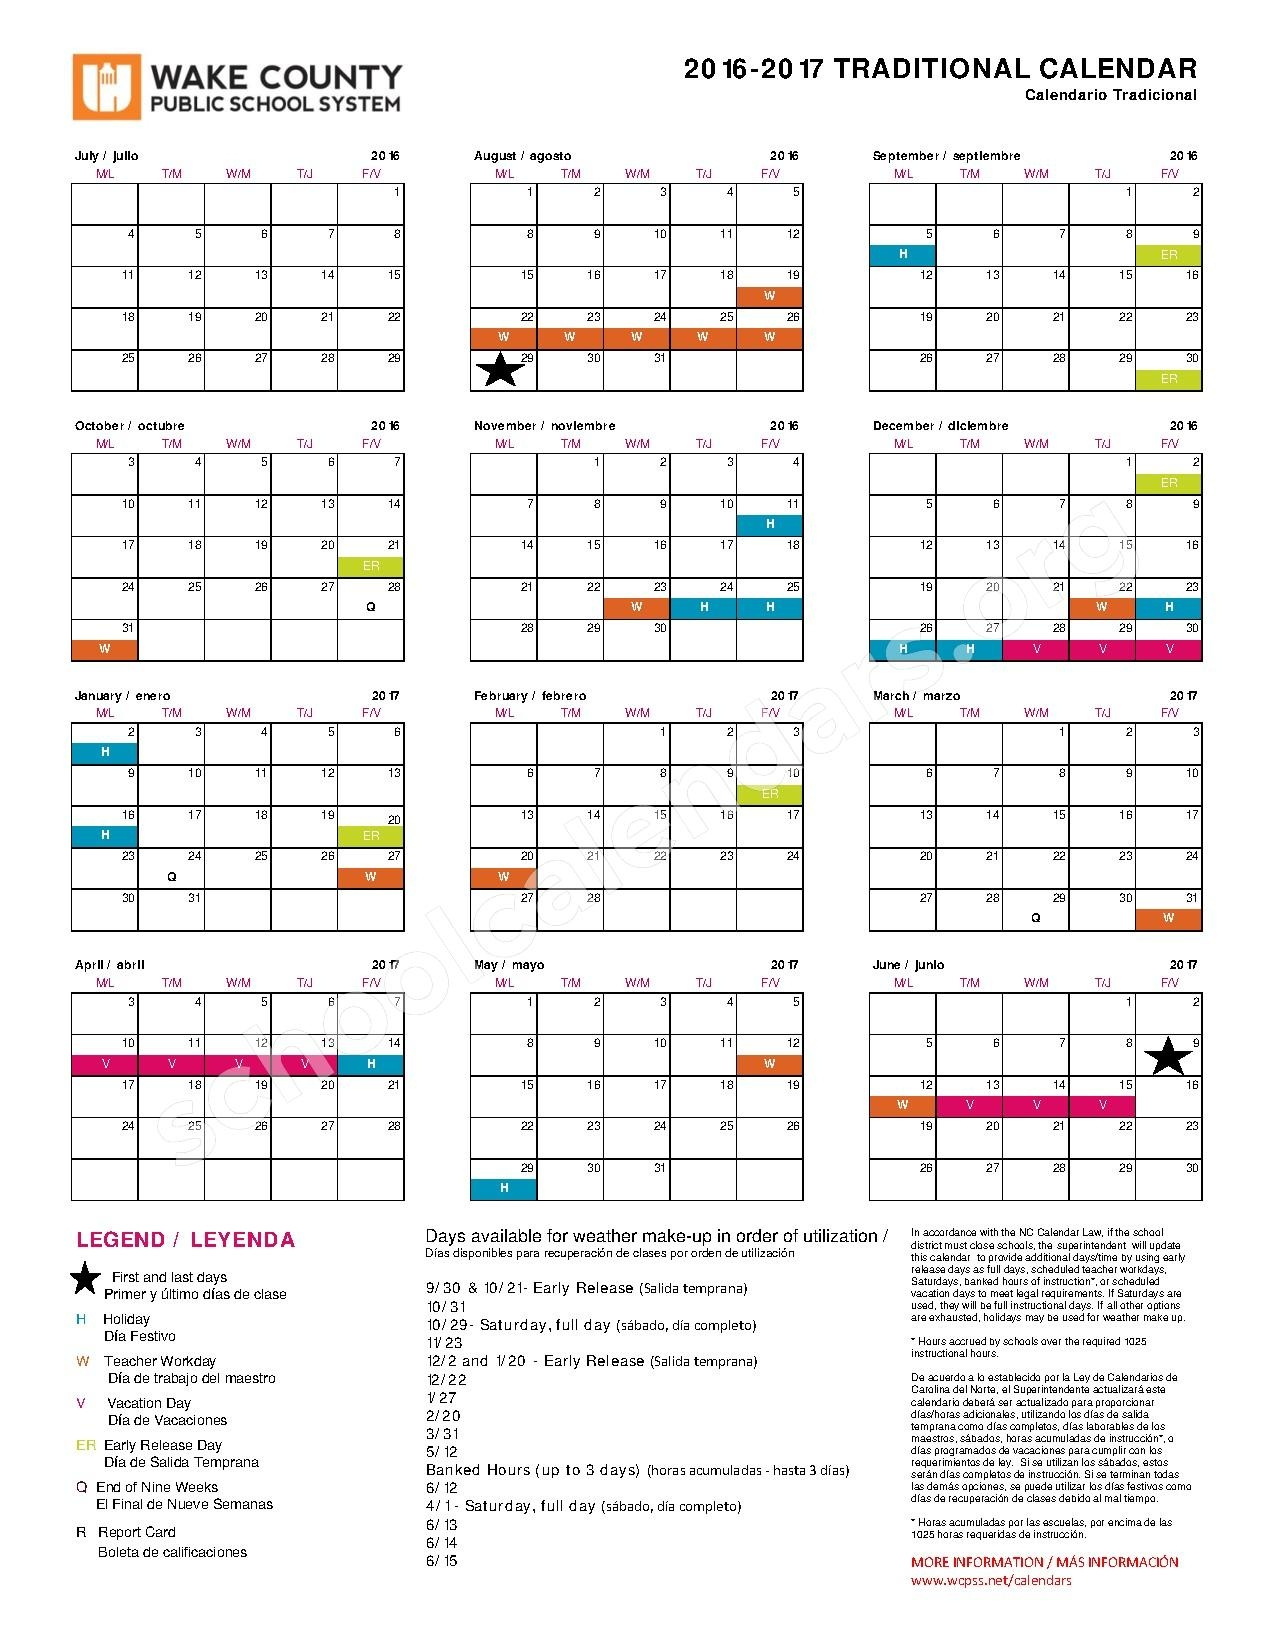 2016 2017 Traditional Calendar Wake County Public School